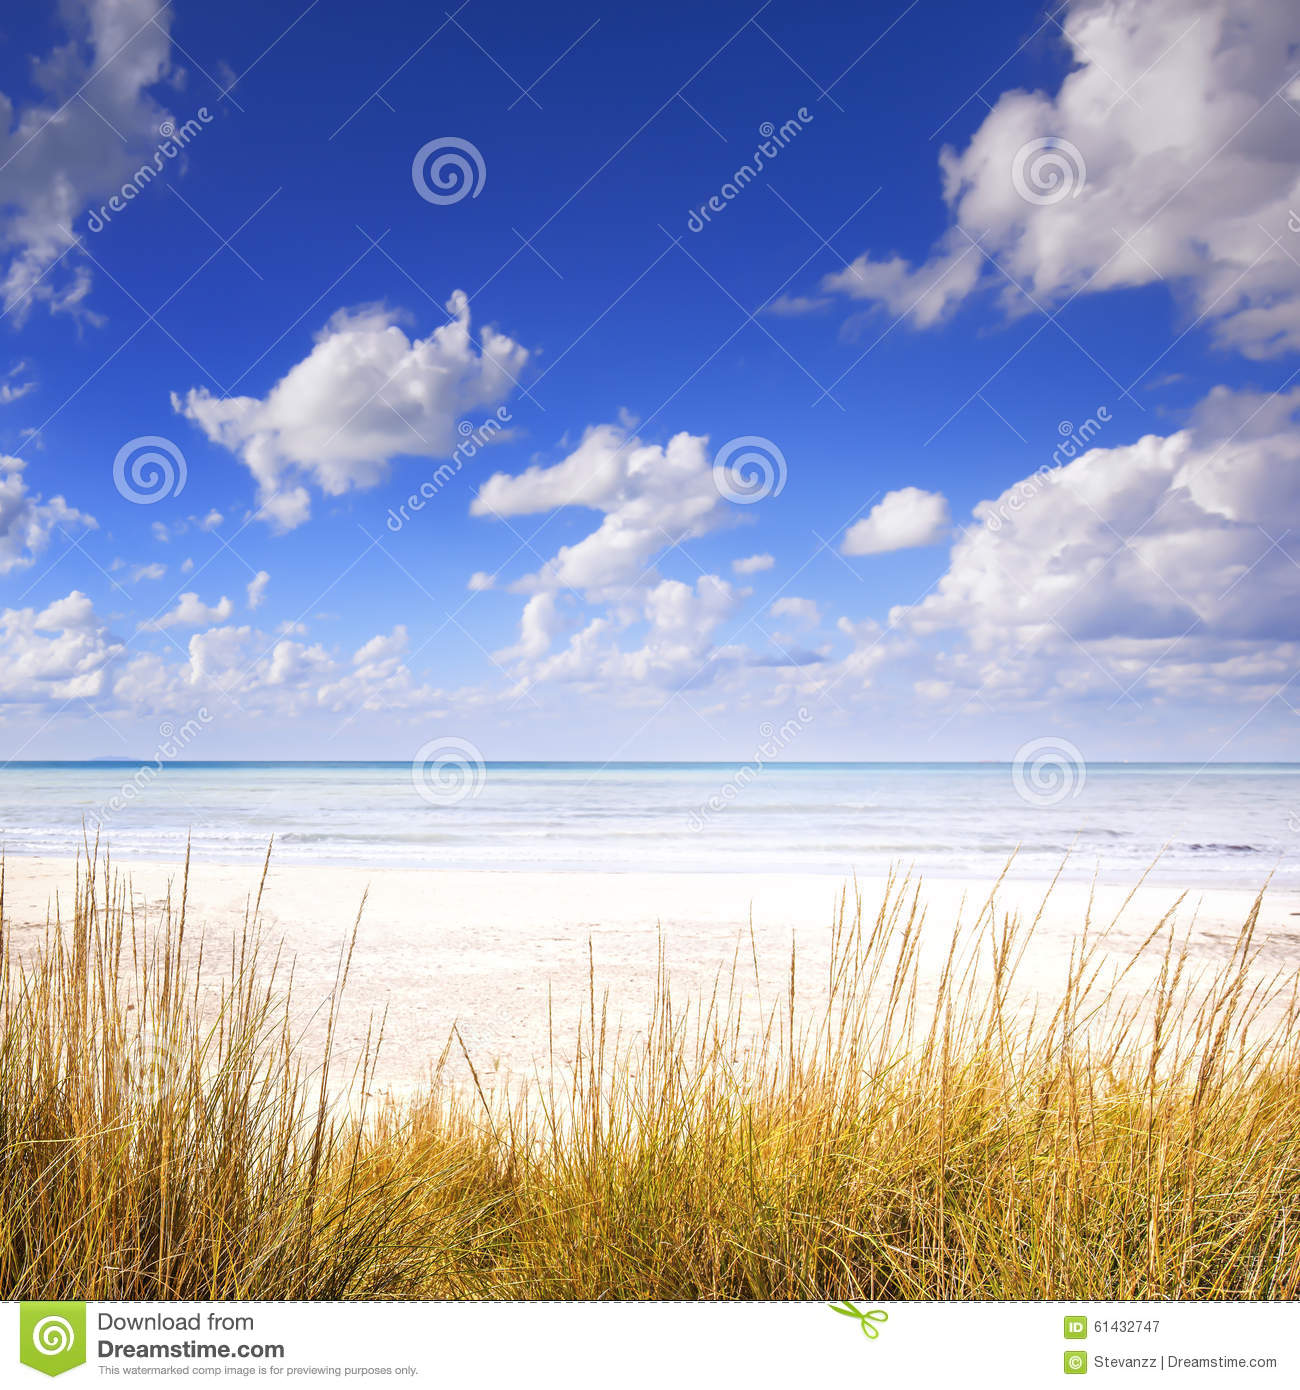 Download Grass On A White Sand Dunes Beach, Ocean And Blue Sky Stock Image - Image of blue, dune: 61432747